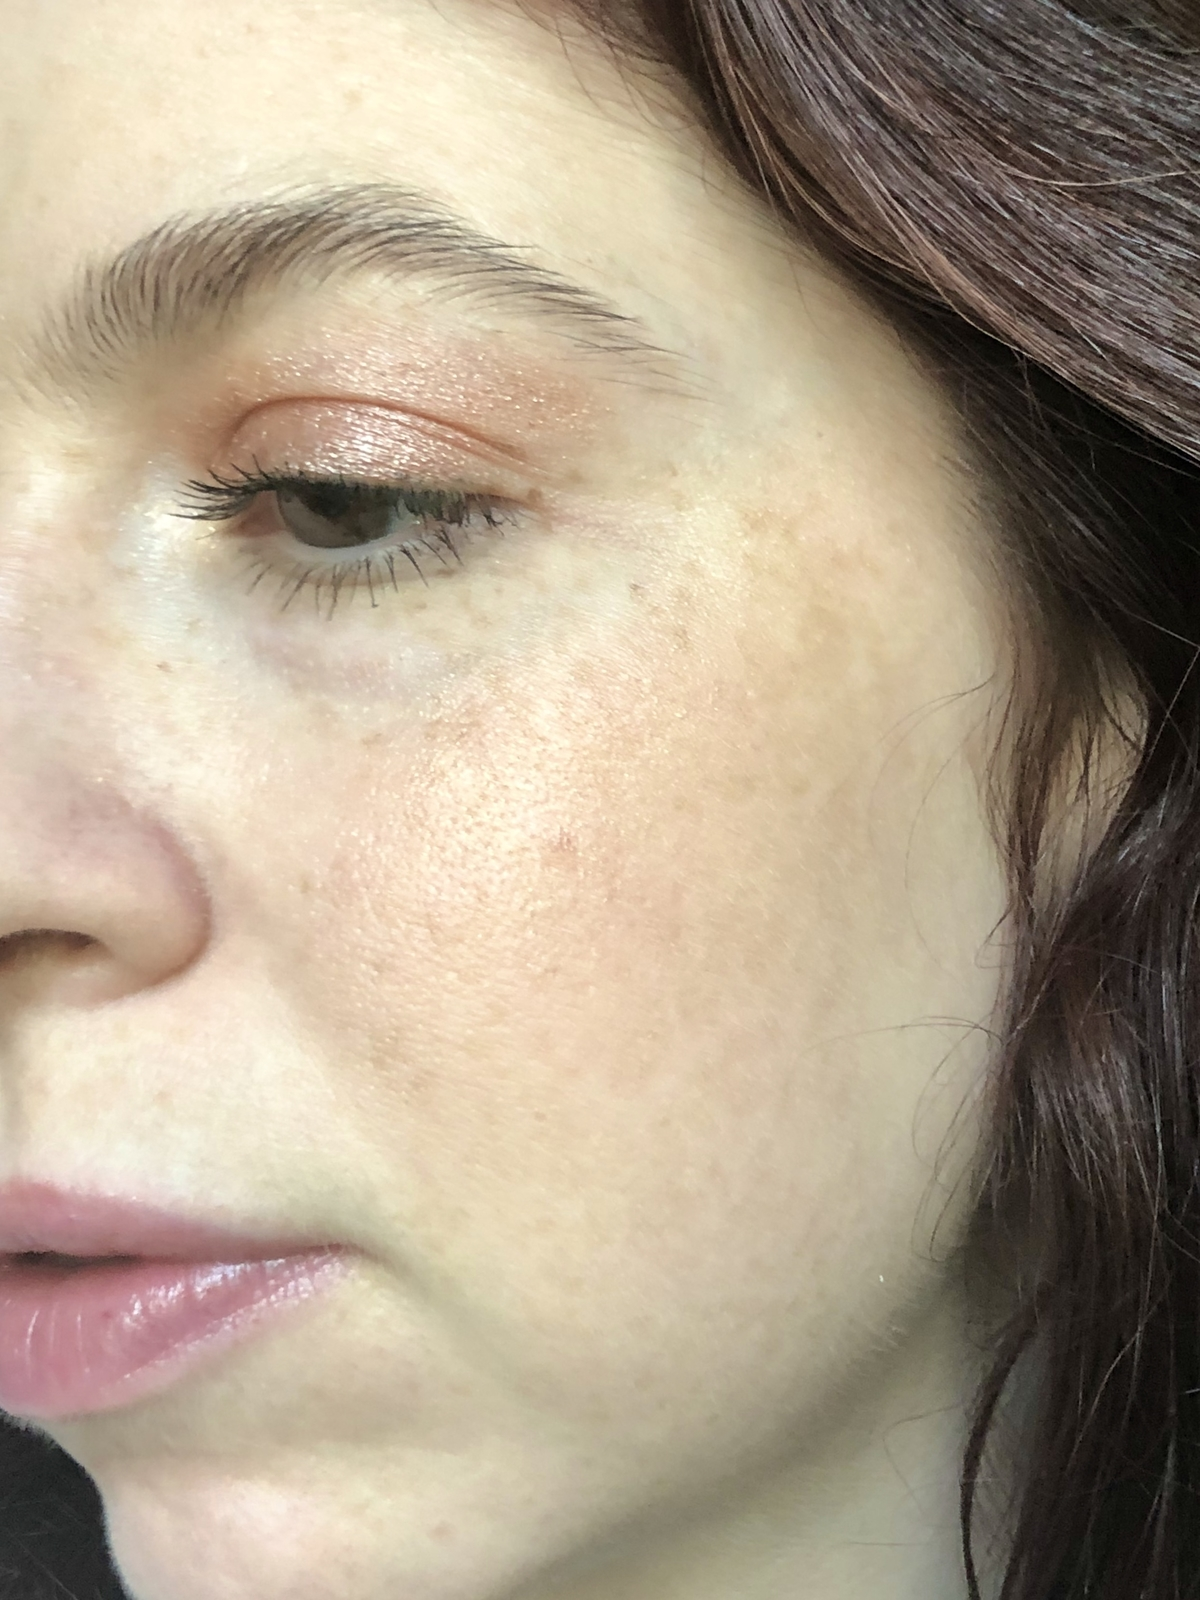 My cheek makeup featuring Dome Beauty Cheek Envy Blush in English Rose, and Luminary Glow Powder Highlighter in Majestic